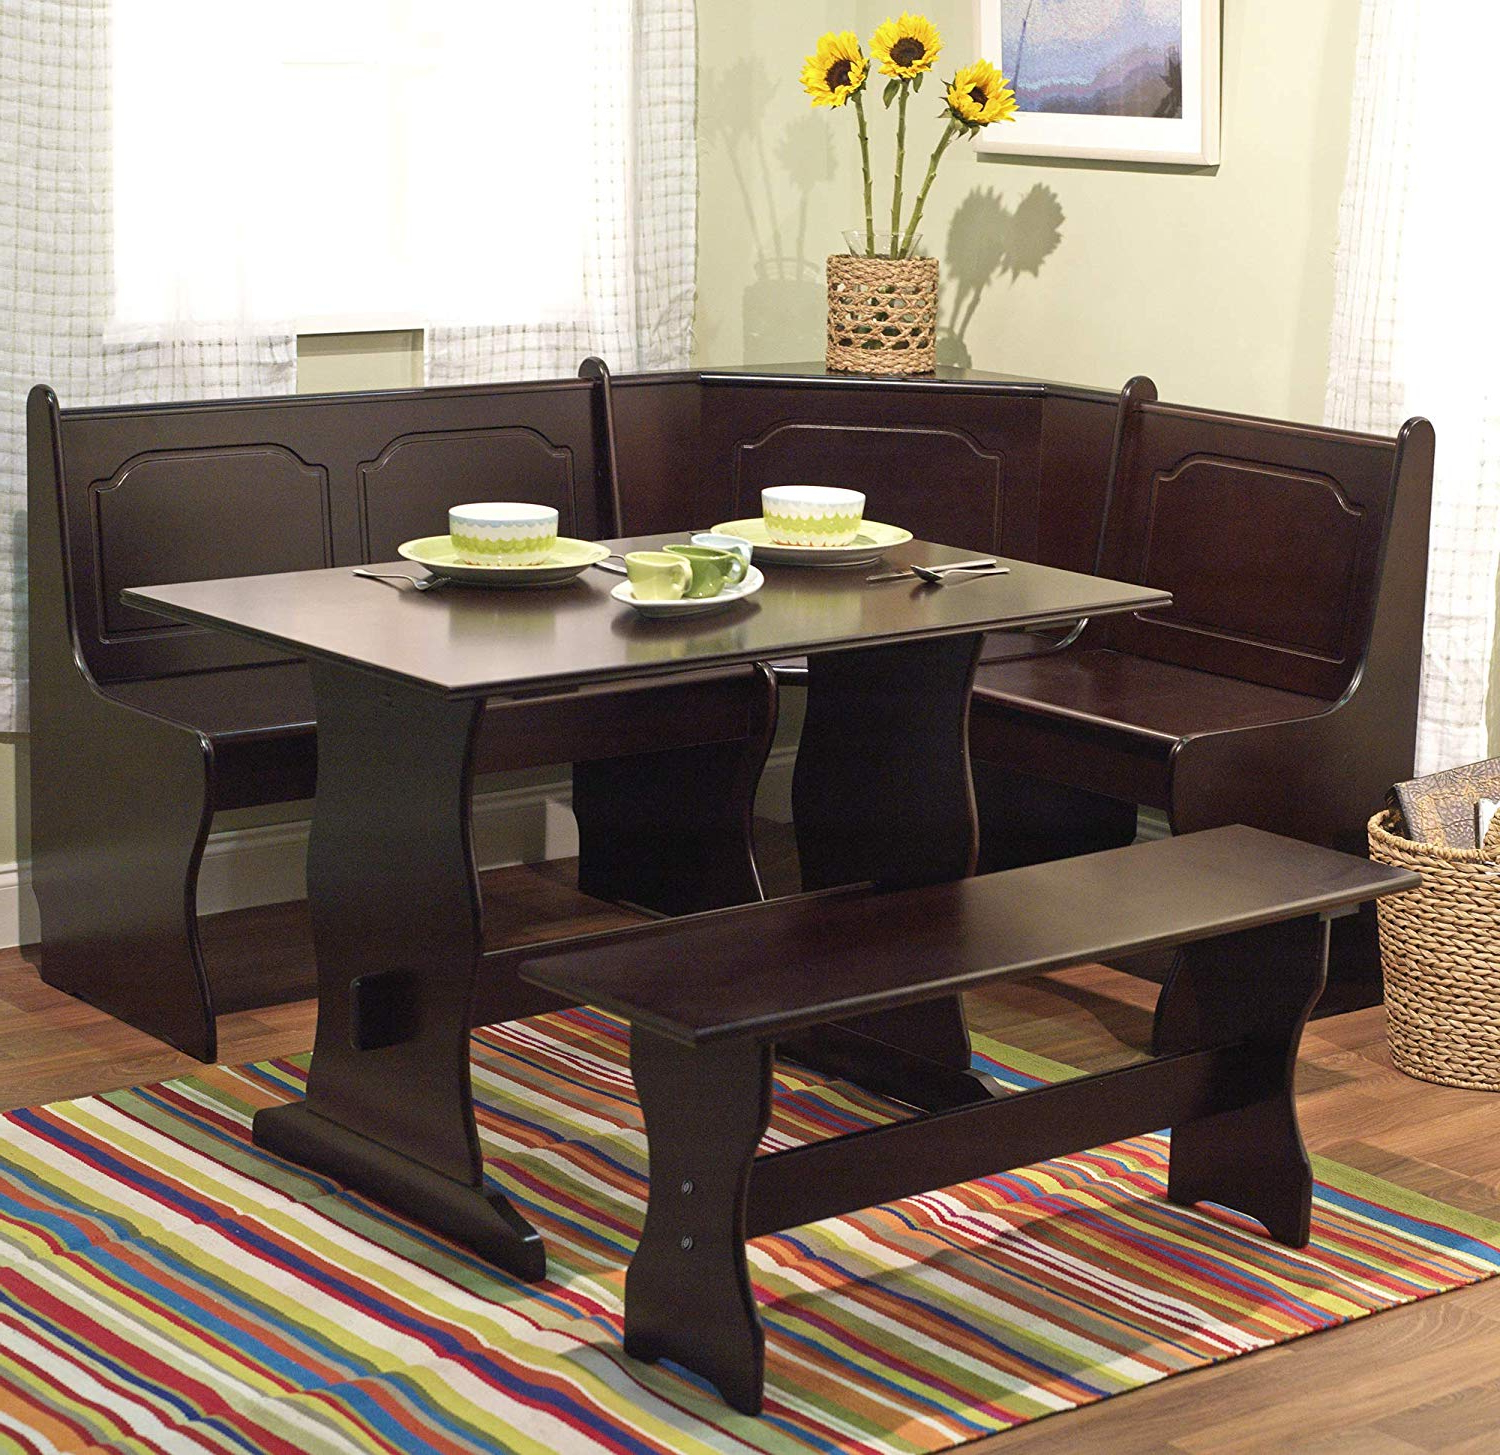 3 Pc Espresso Wooden Breakfast Nook Dining Set Corner Booth Bench With Regard To Most Recent 3 Piece Breakfast Nook Dinning Set (View 5 of 25)